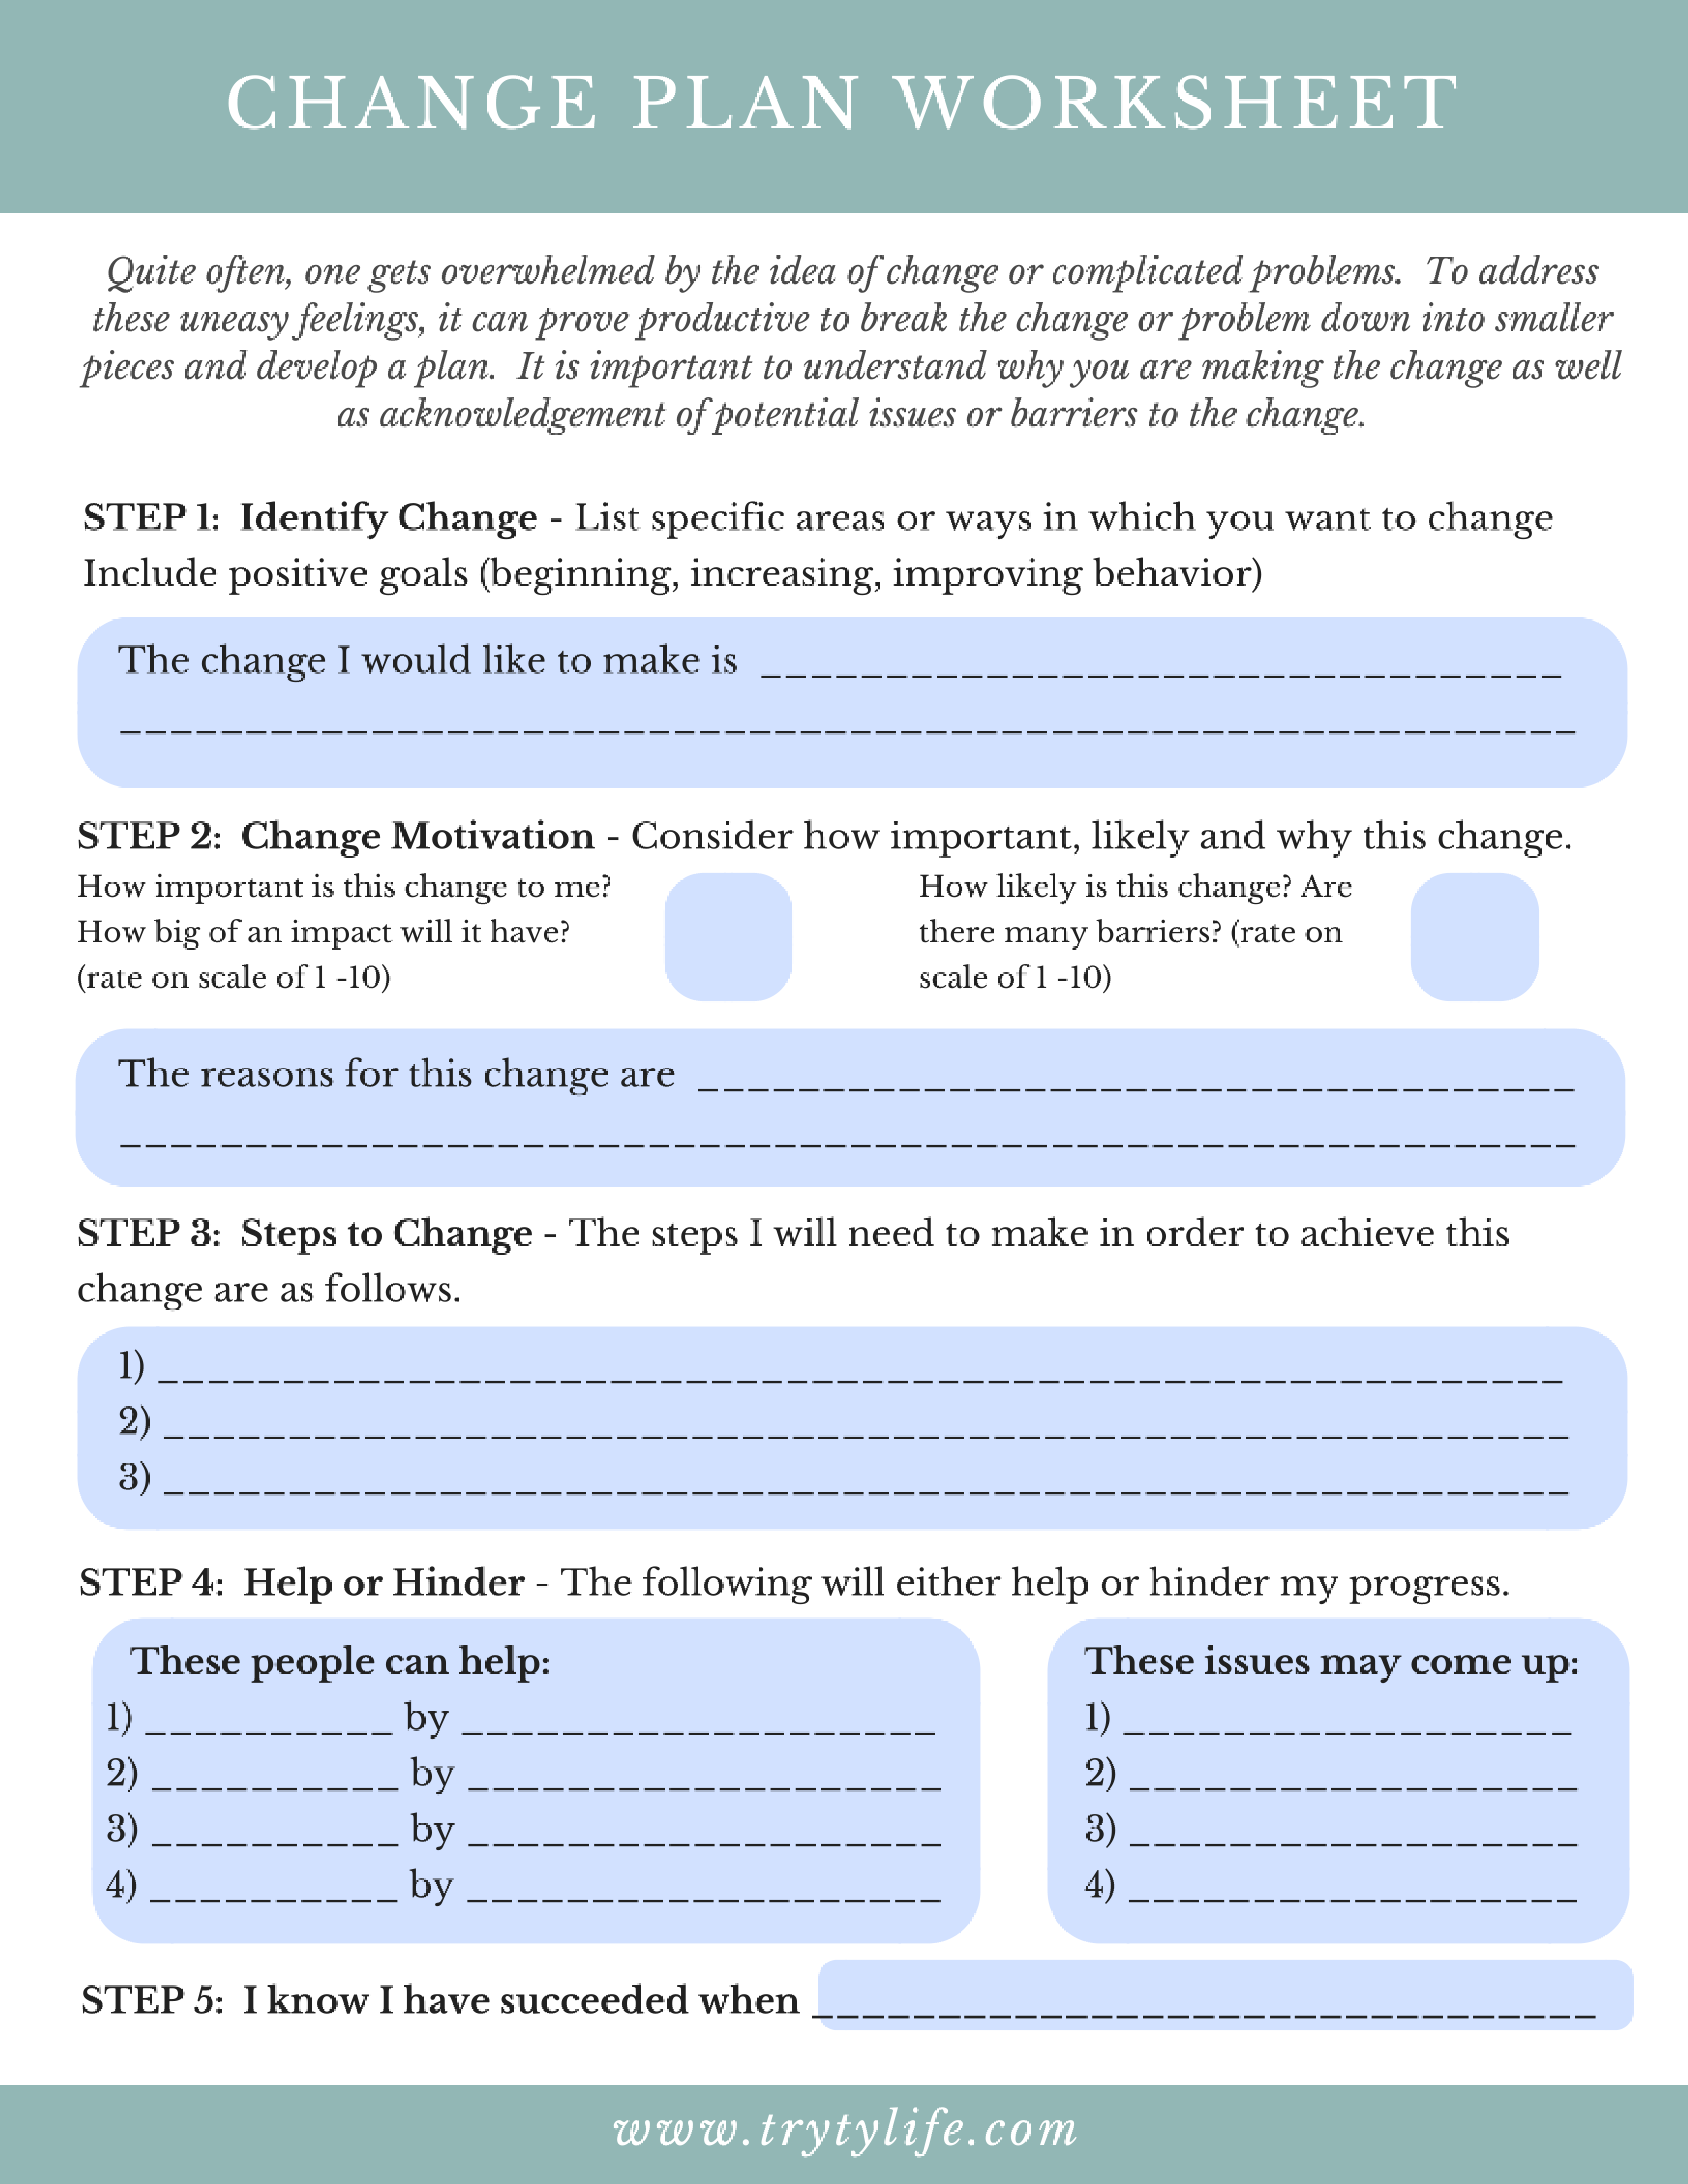 worksheet Change Plan Worksheet pin by cygnus fogle on w o pinterest worksheets and therapy ideas ideas